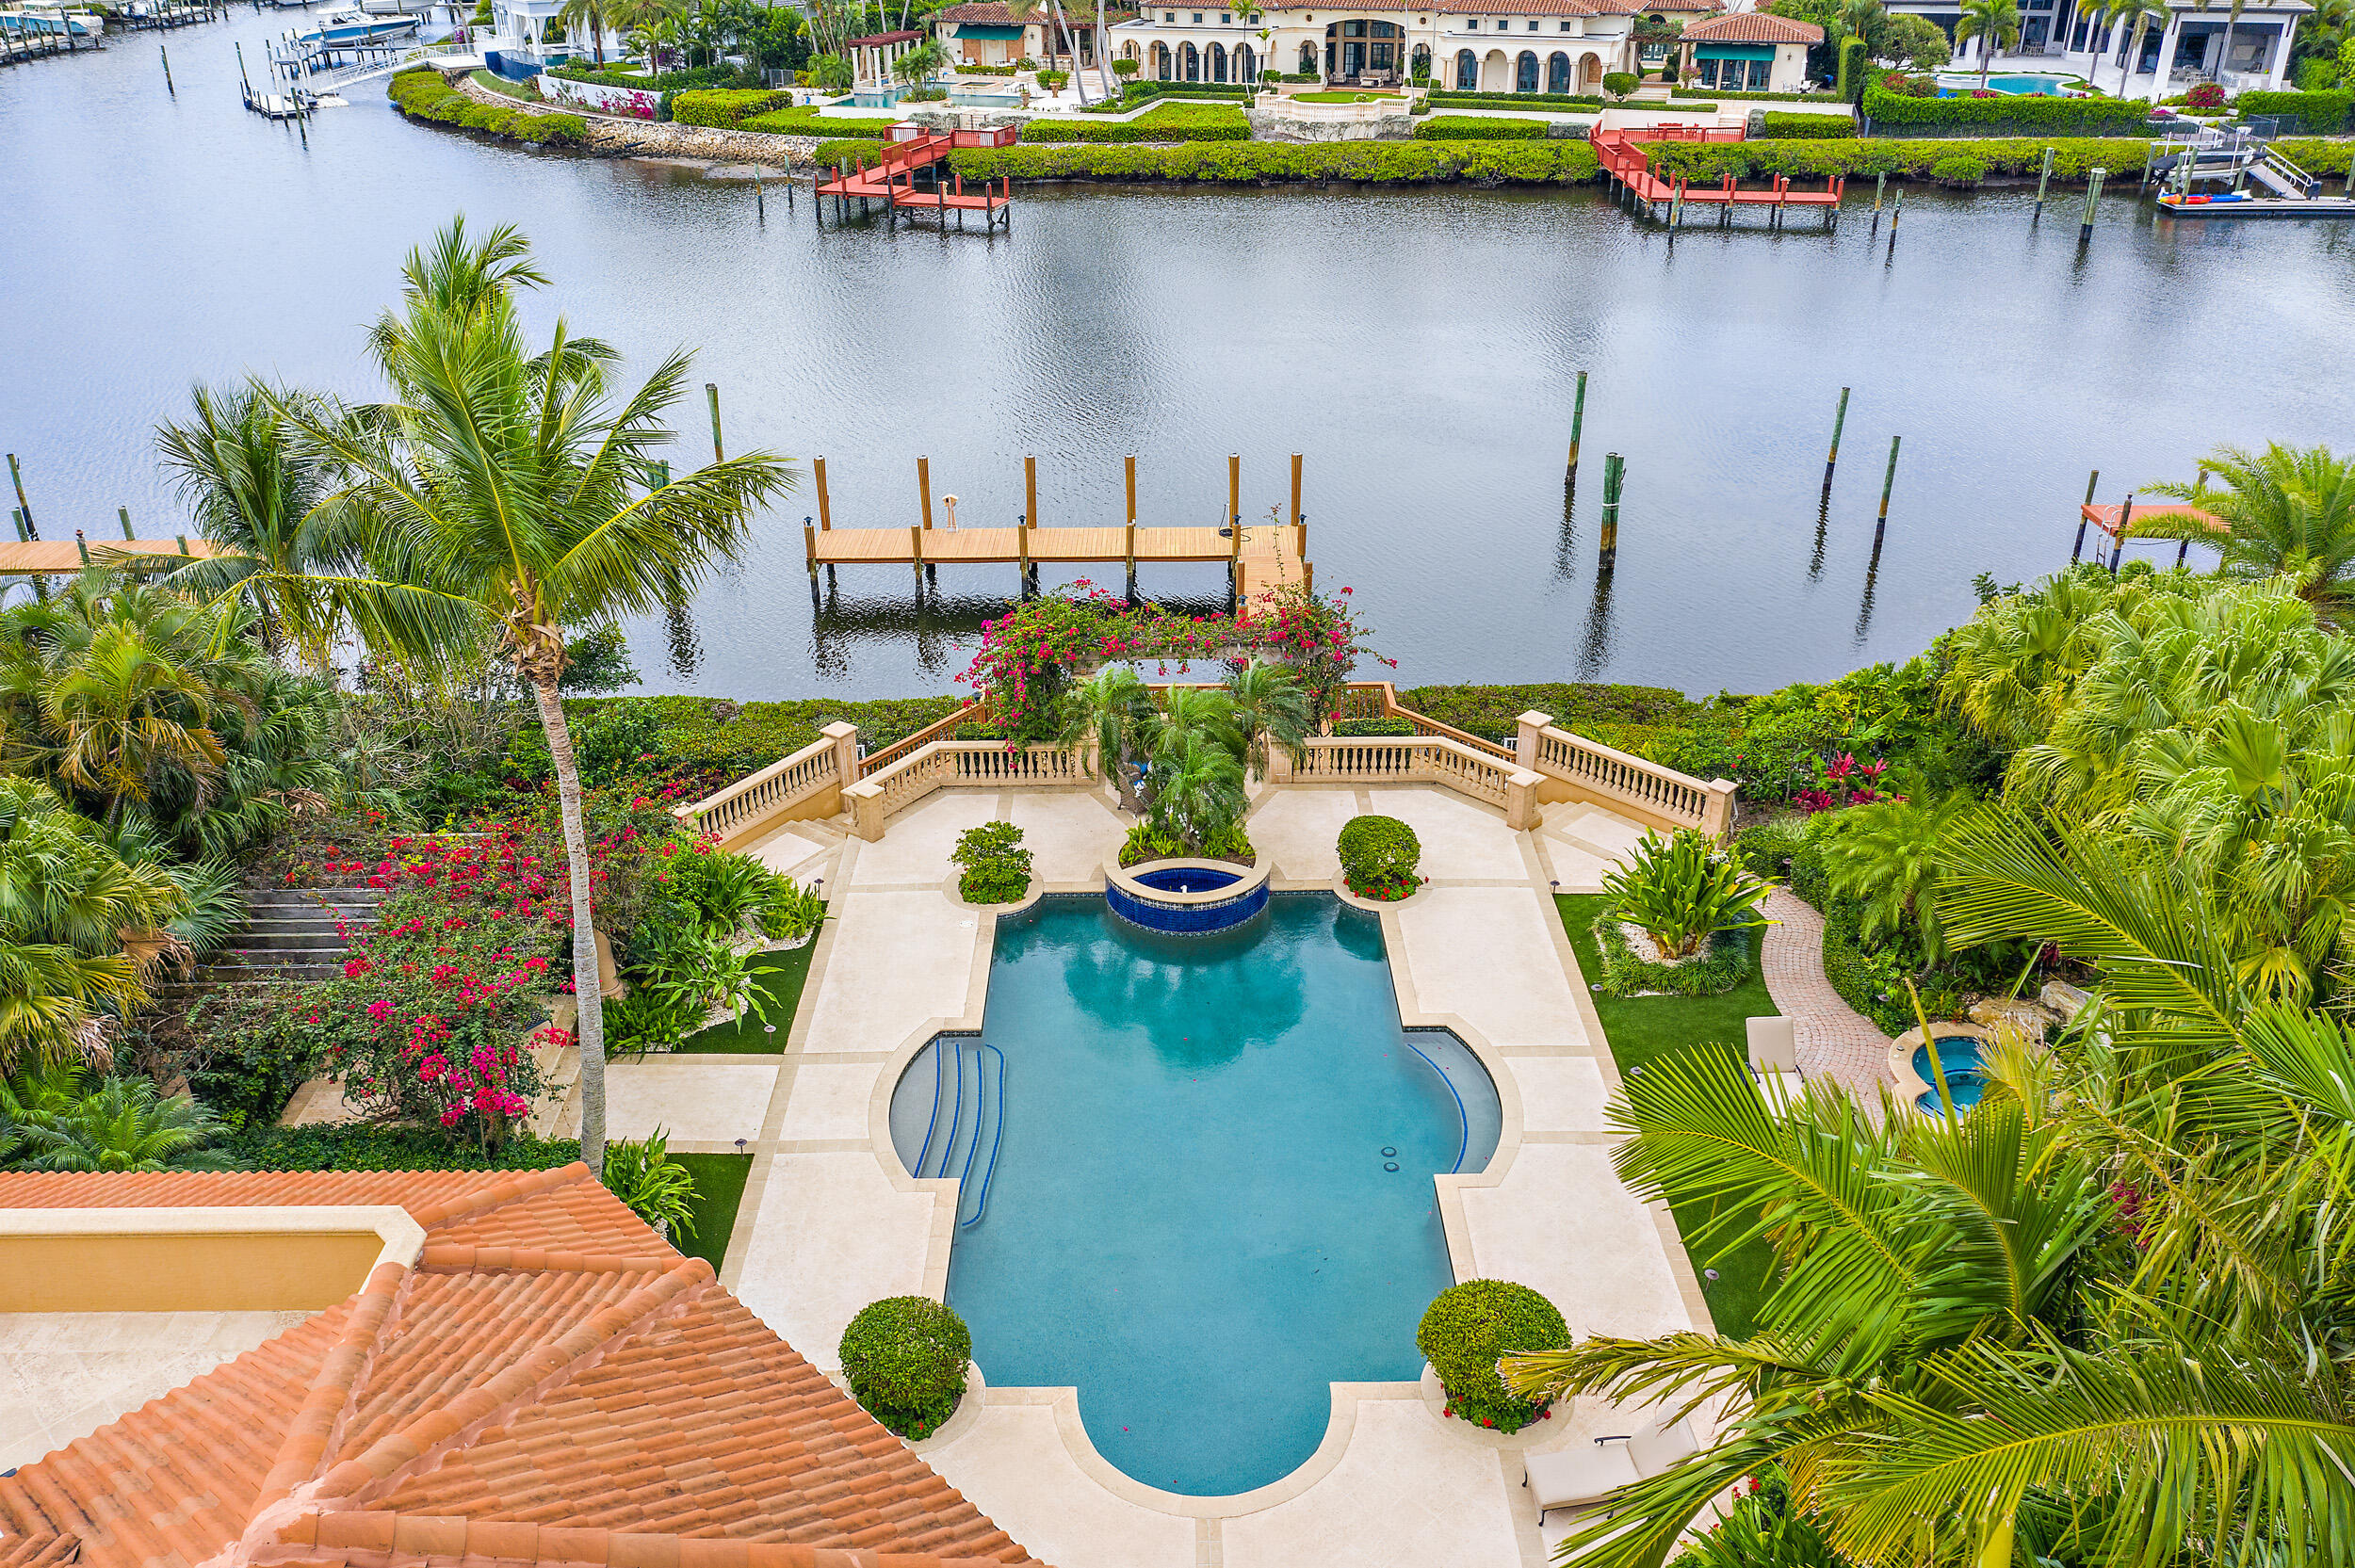 456 Mariner Drive, Jupiter, Florida 33477, 5 Bedrooms Bedrooms, ,5.1 BathroomsBathrooms,A,Single family,Mariner,RX-10704520